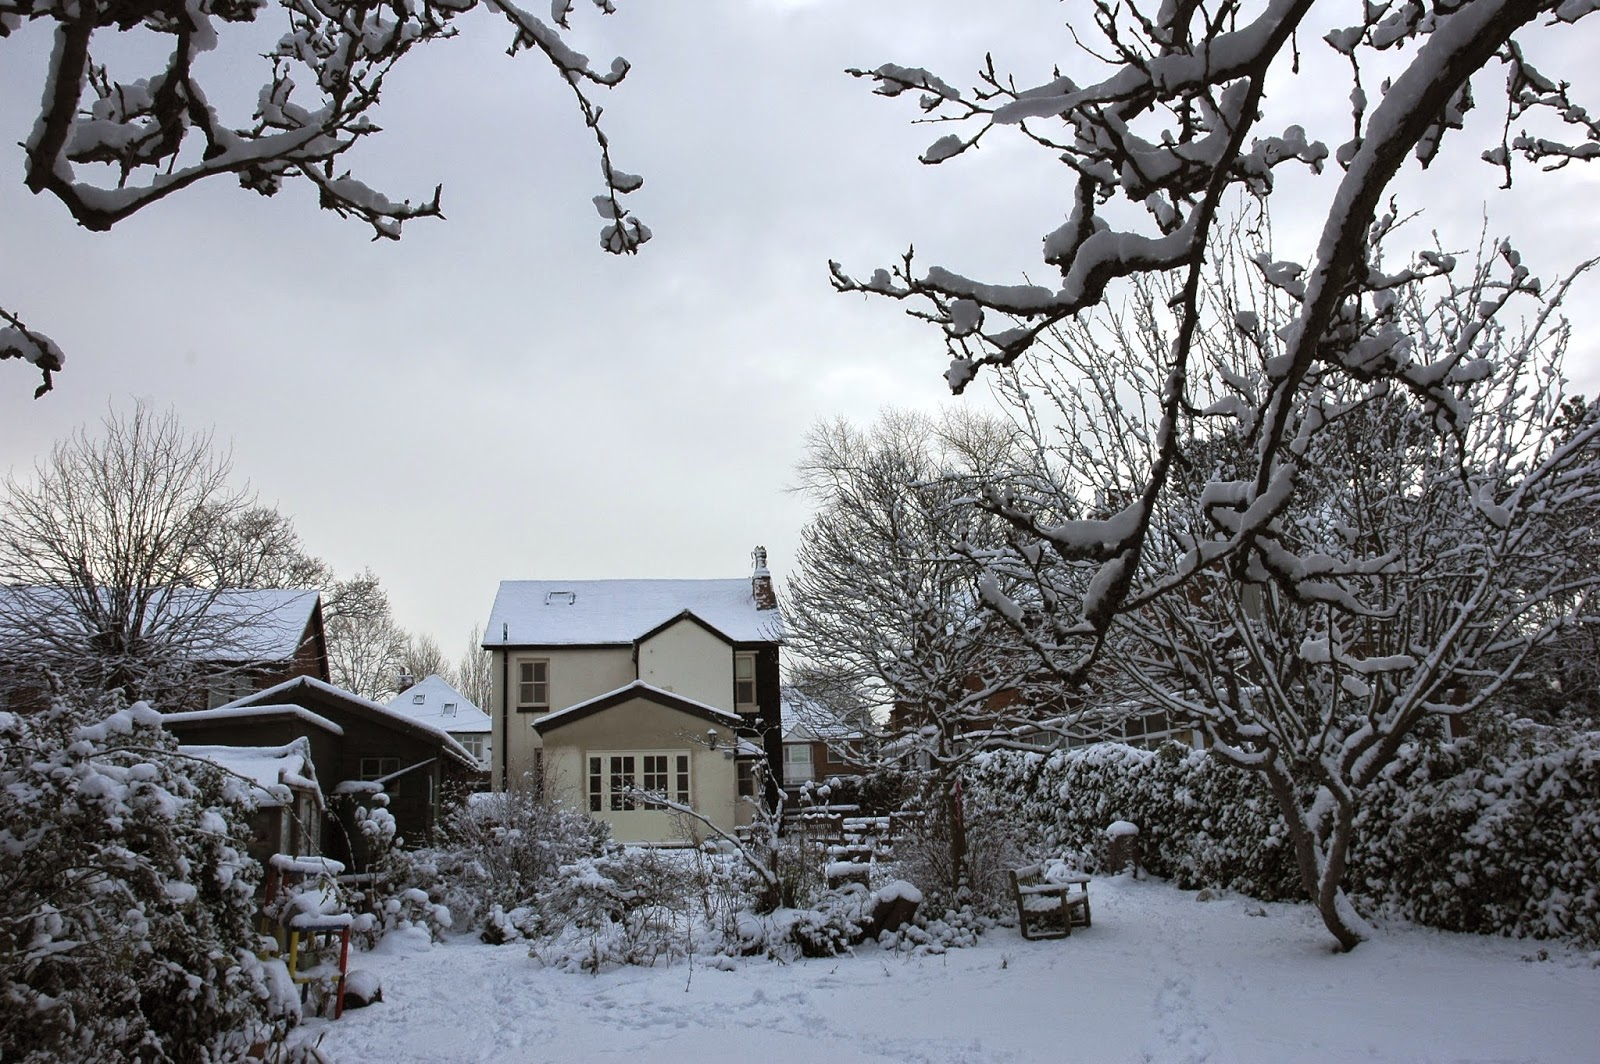 The Tuckshop Garden in winter